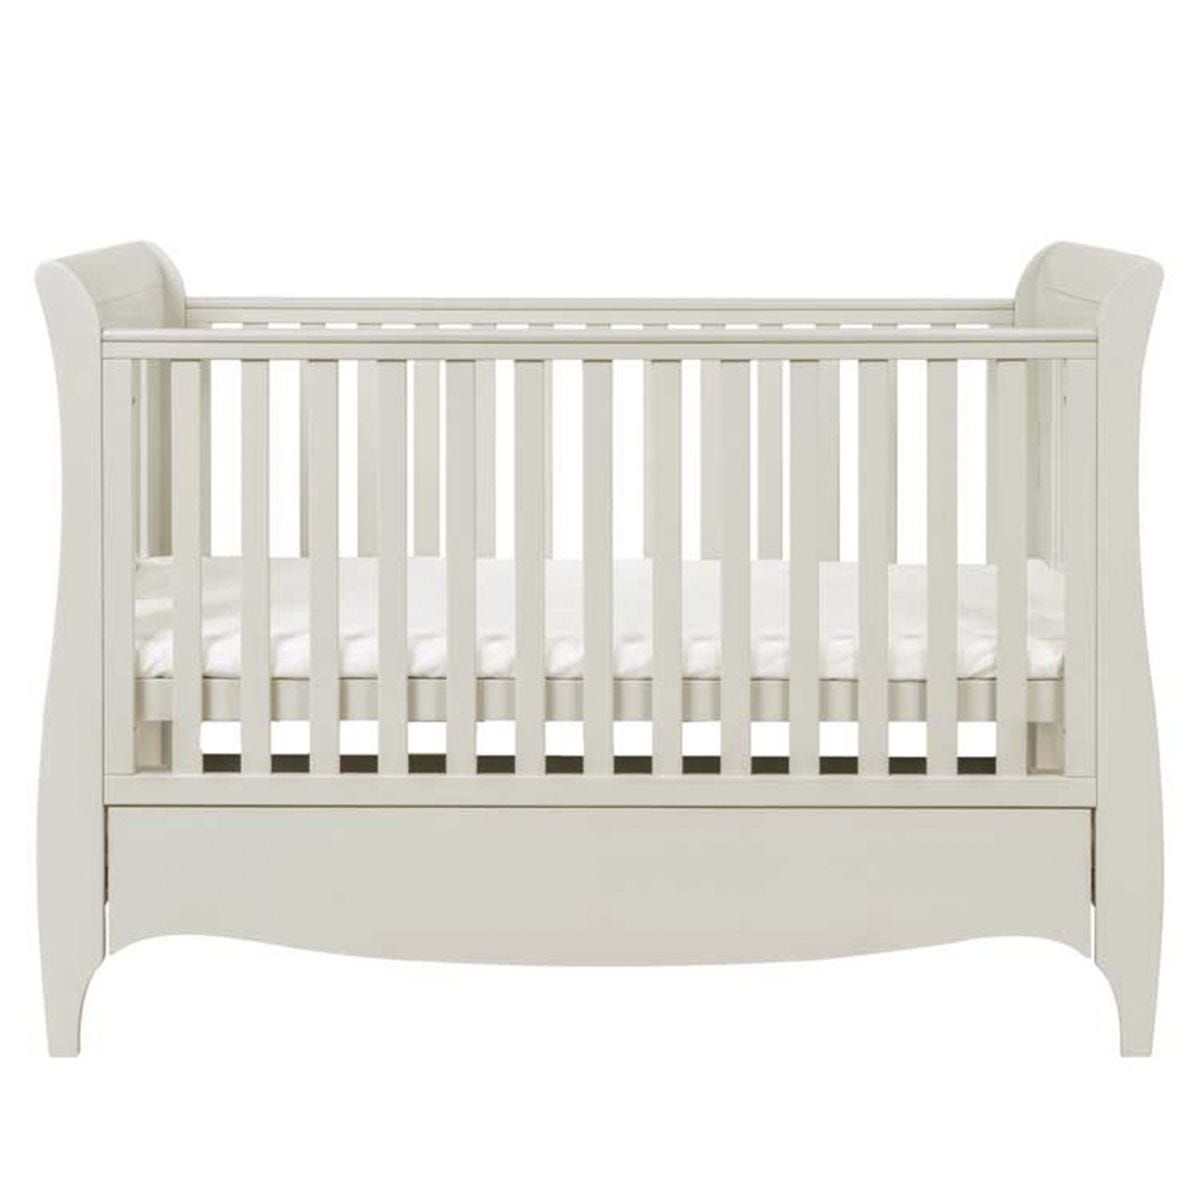 Tutti Bambini Roma Sleigh Cot Bed With Drawer - Linen